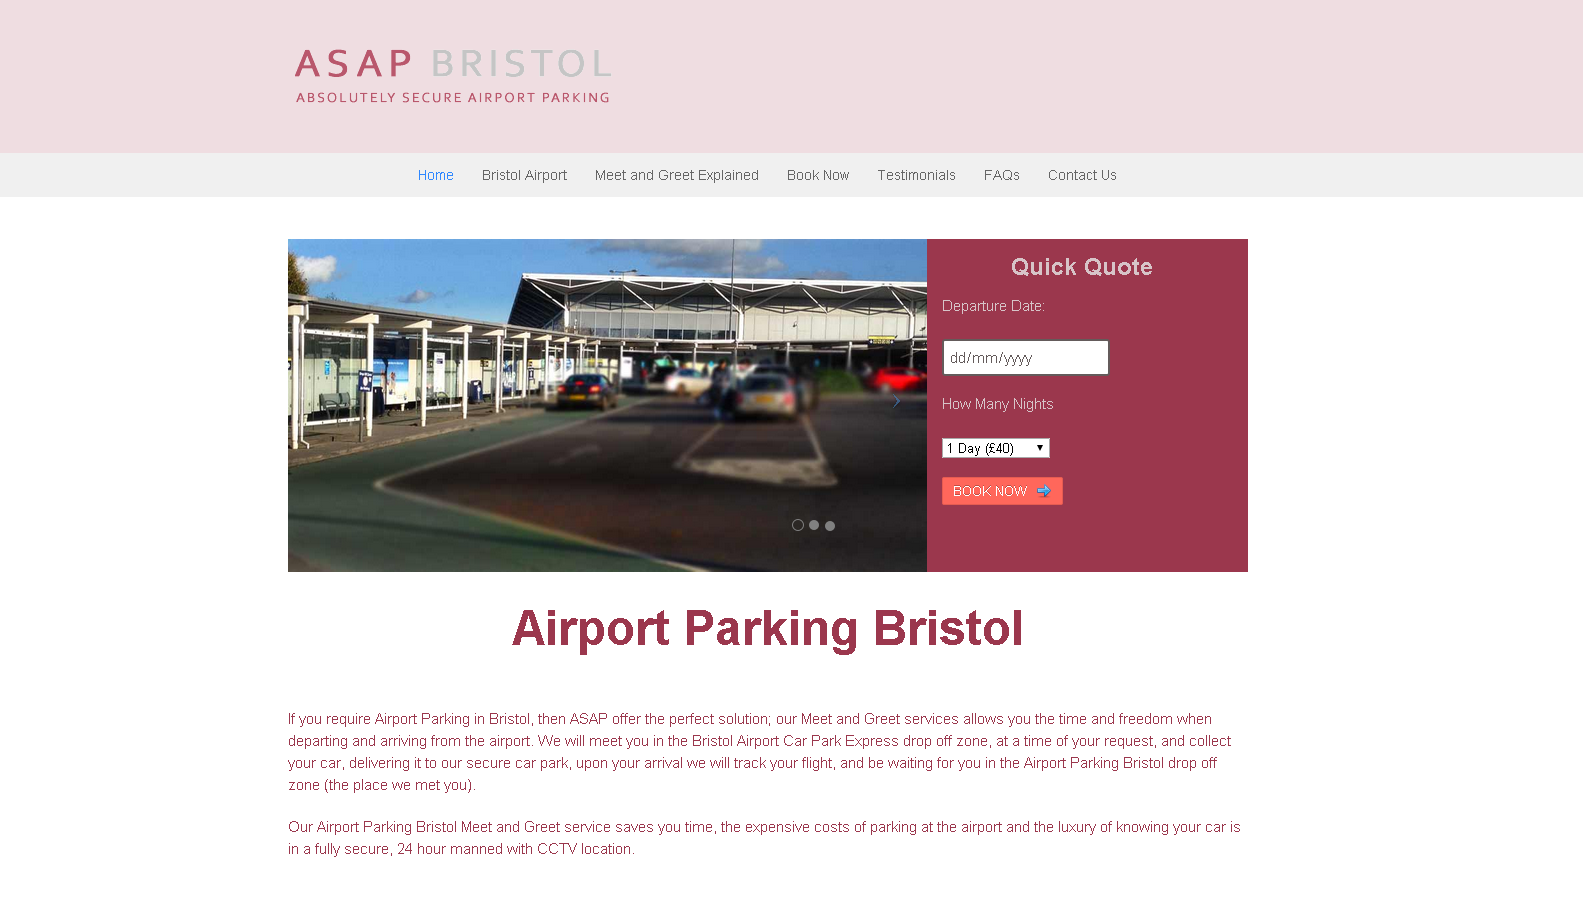 Bath Business Web Have Designed A New Website For Asap Bristol And